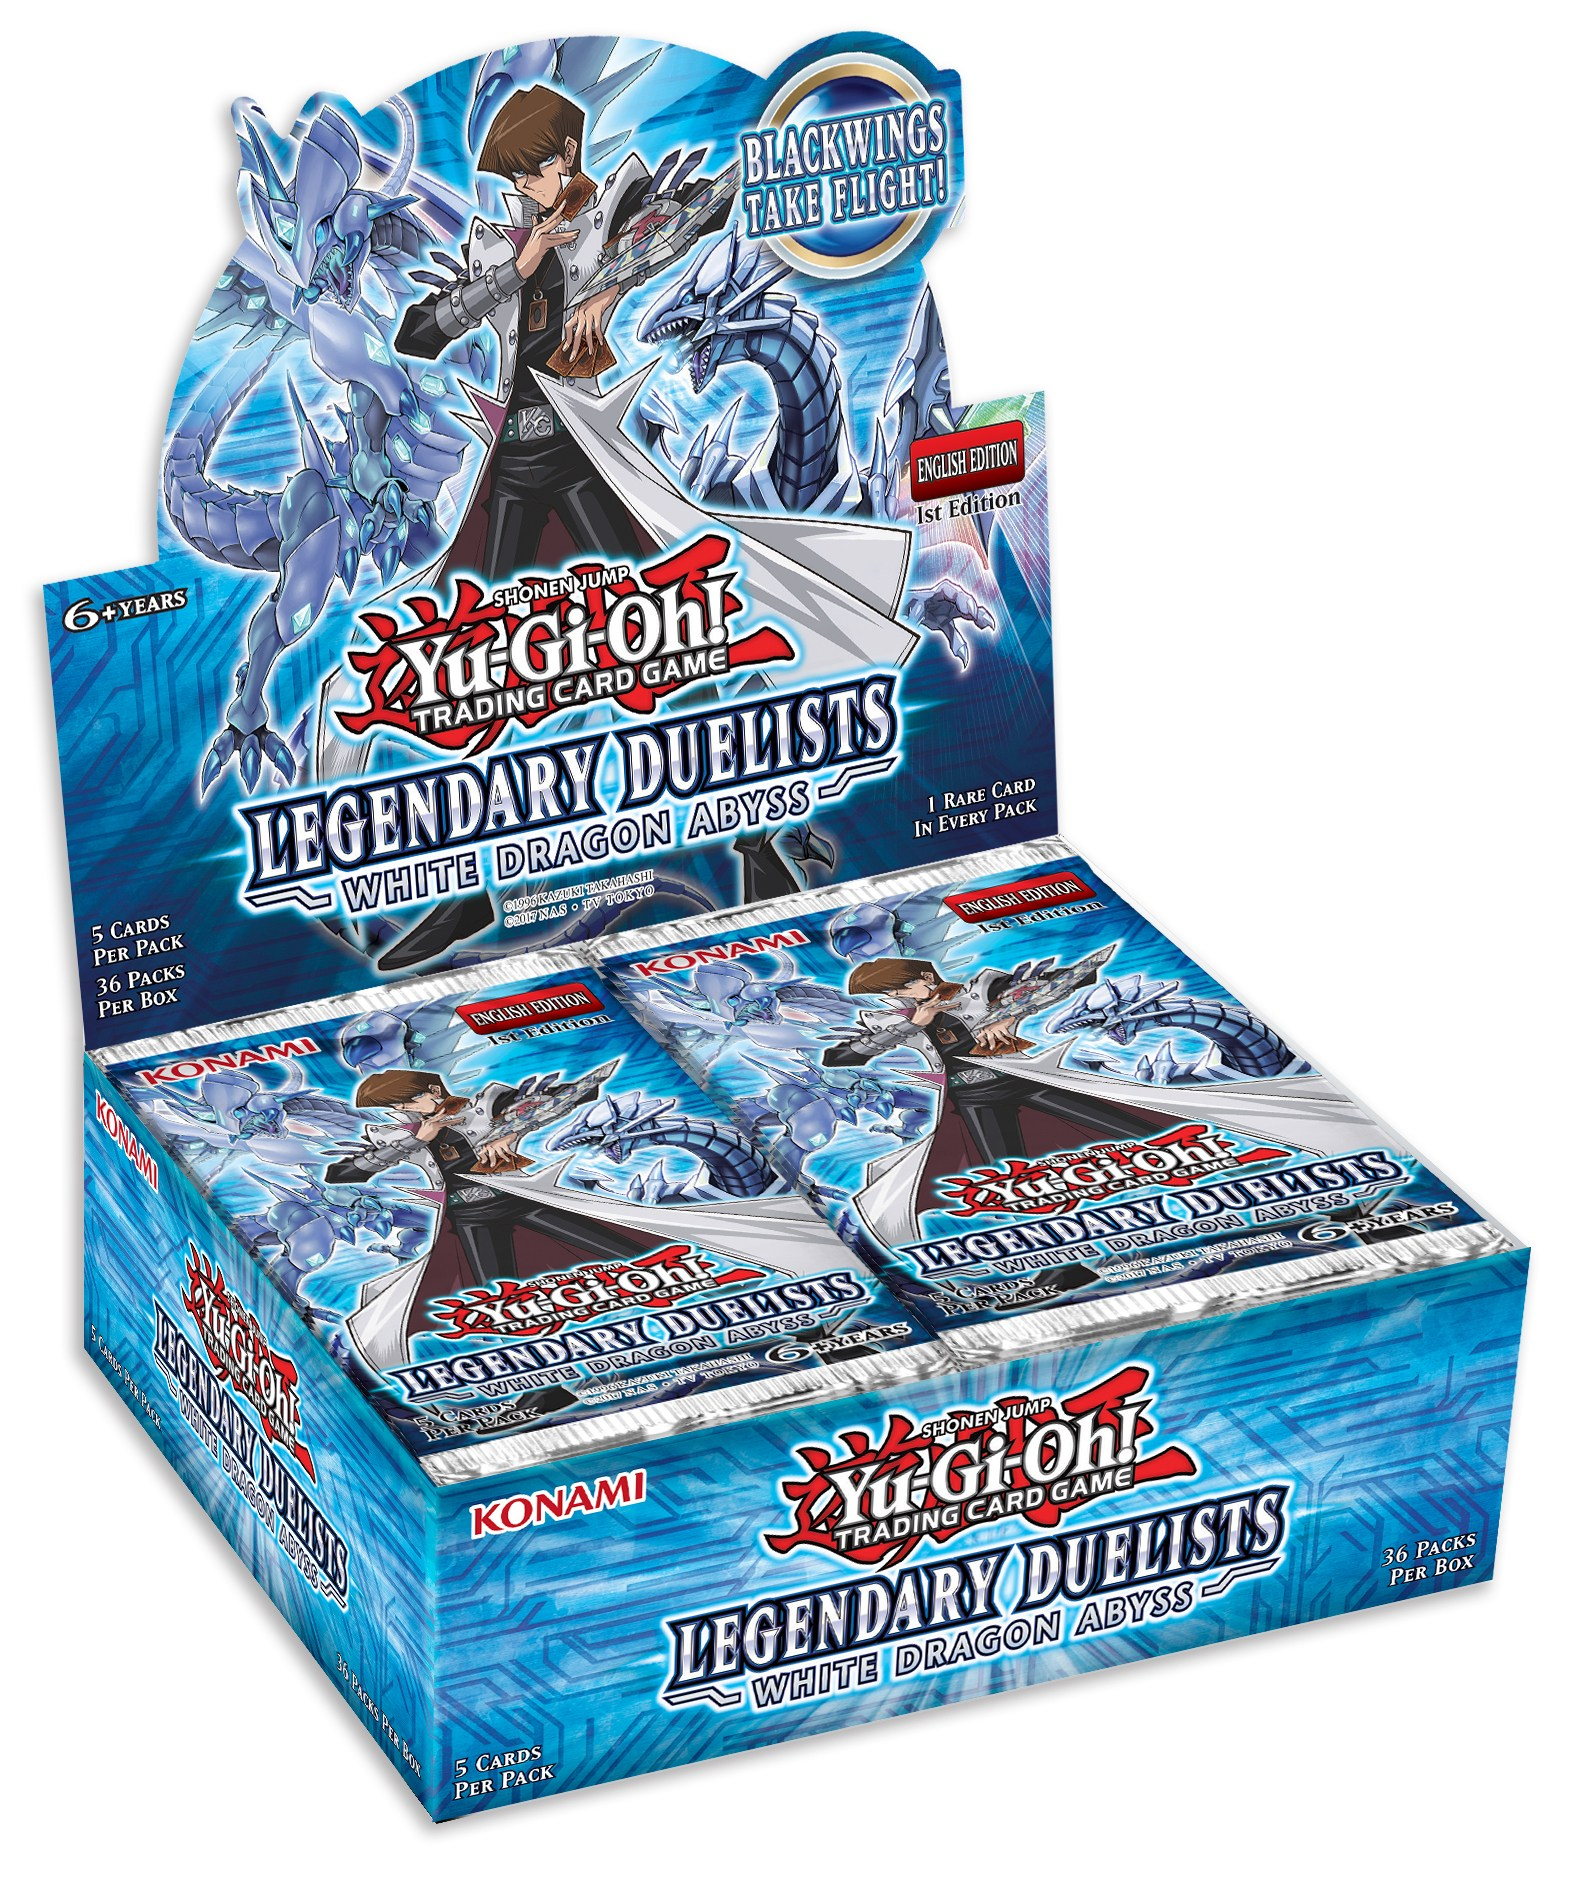 YuGiOh Legendary Duelist White Dragon Abyss Booster Box